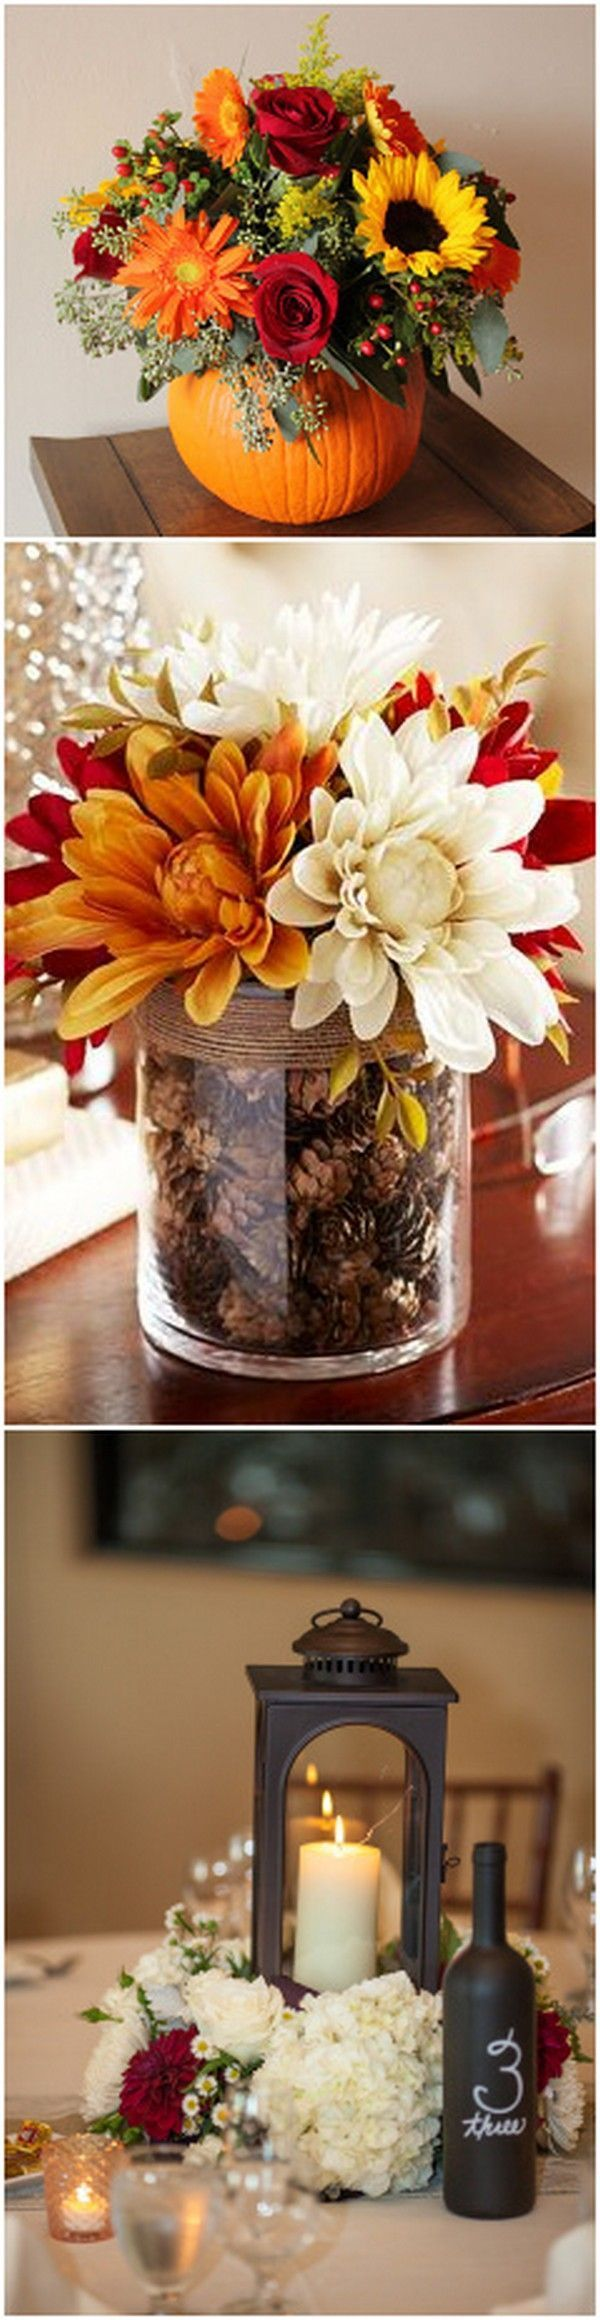 Fall wedding decor 2018   Amazing Fall Wedding Ideas for   Page  of   Beautiful